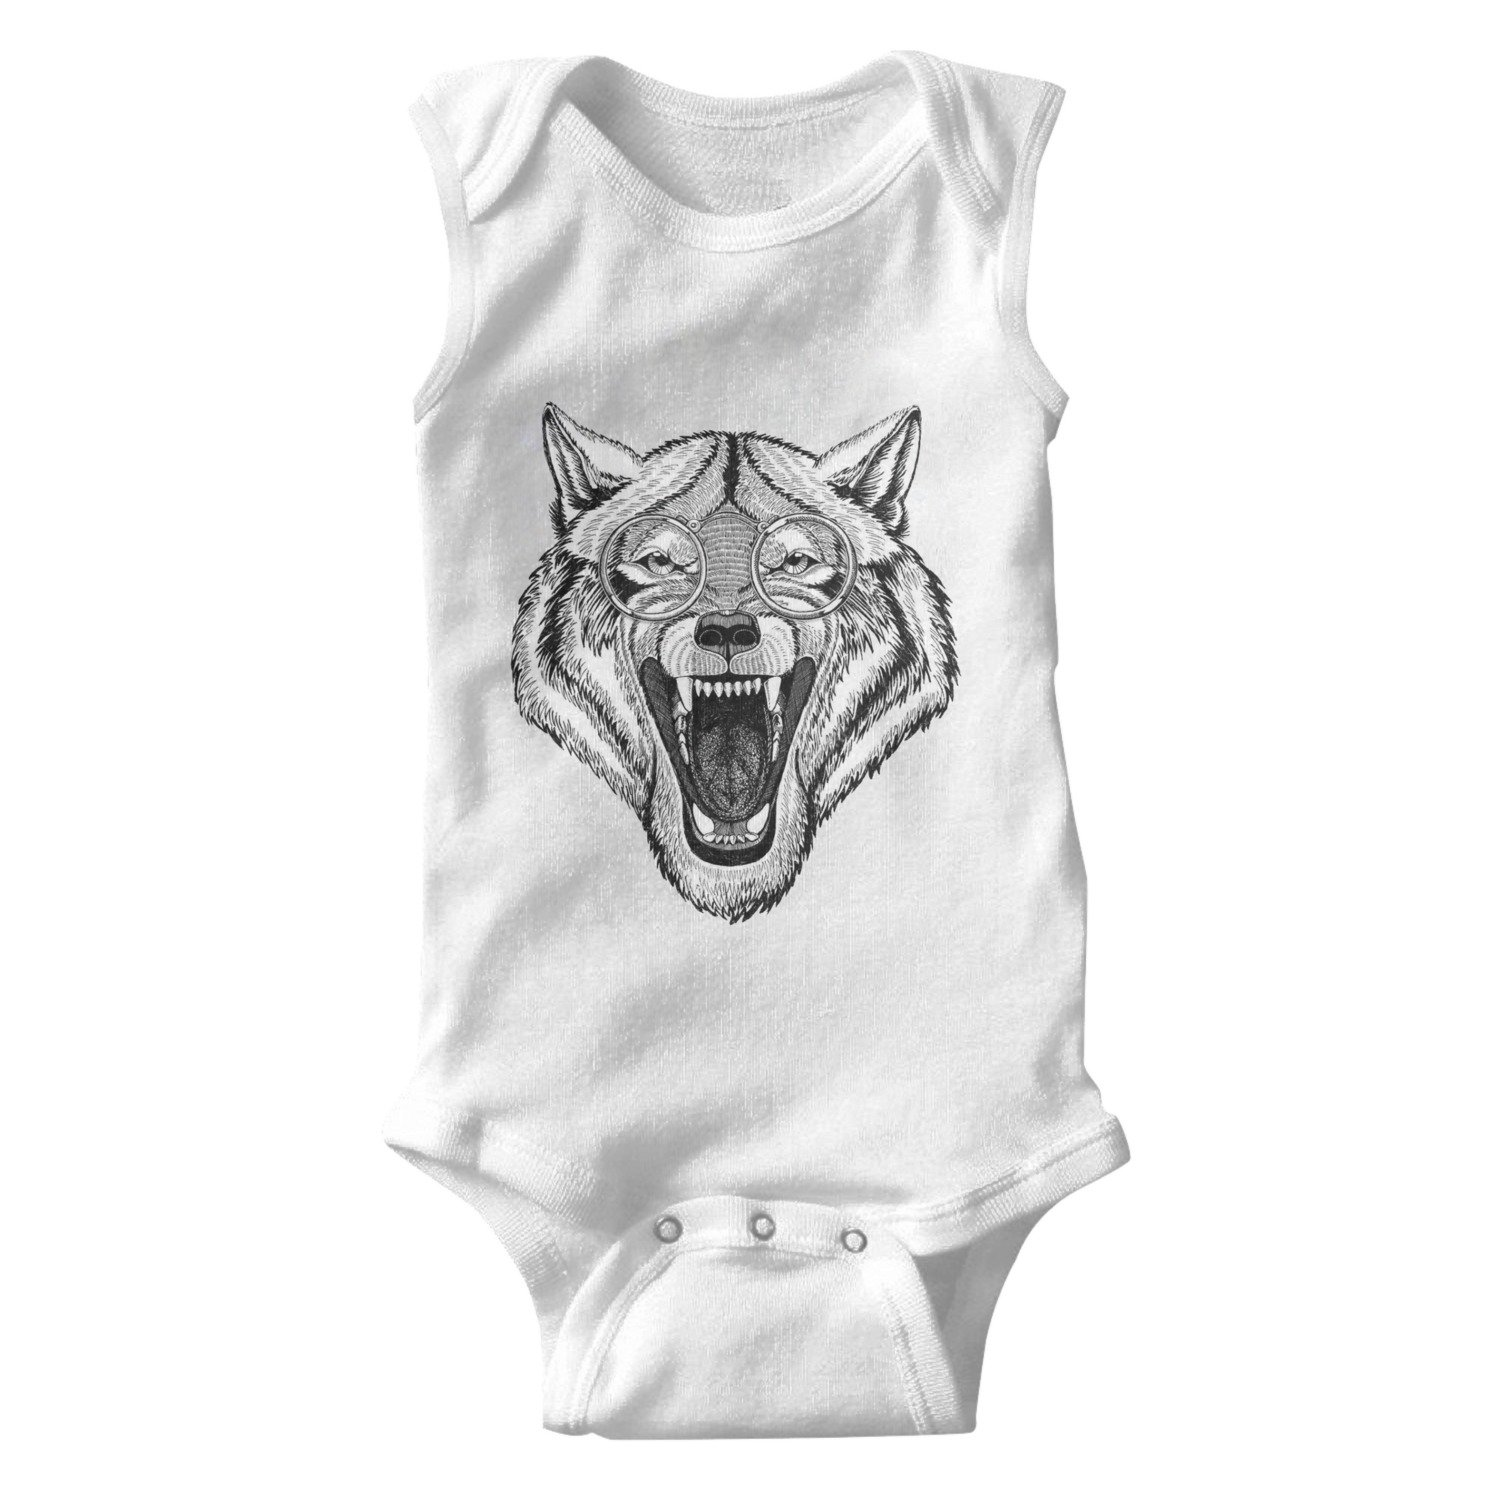 Hippie Hipster Wolf Wearing Glasses Angry Wolf Unisex Baby Cotton Sleeveless Toddler Clothes Baby Onesies White by lsawdas